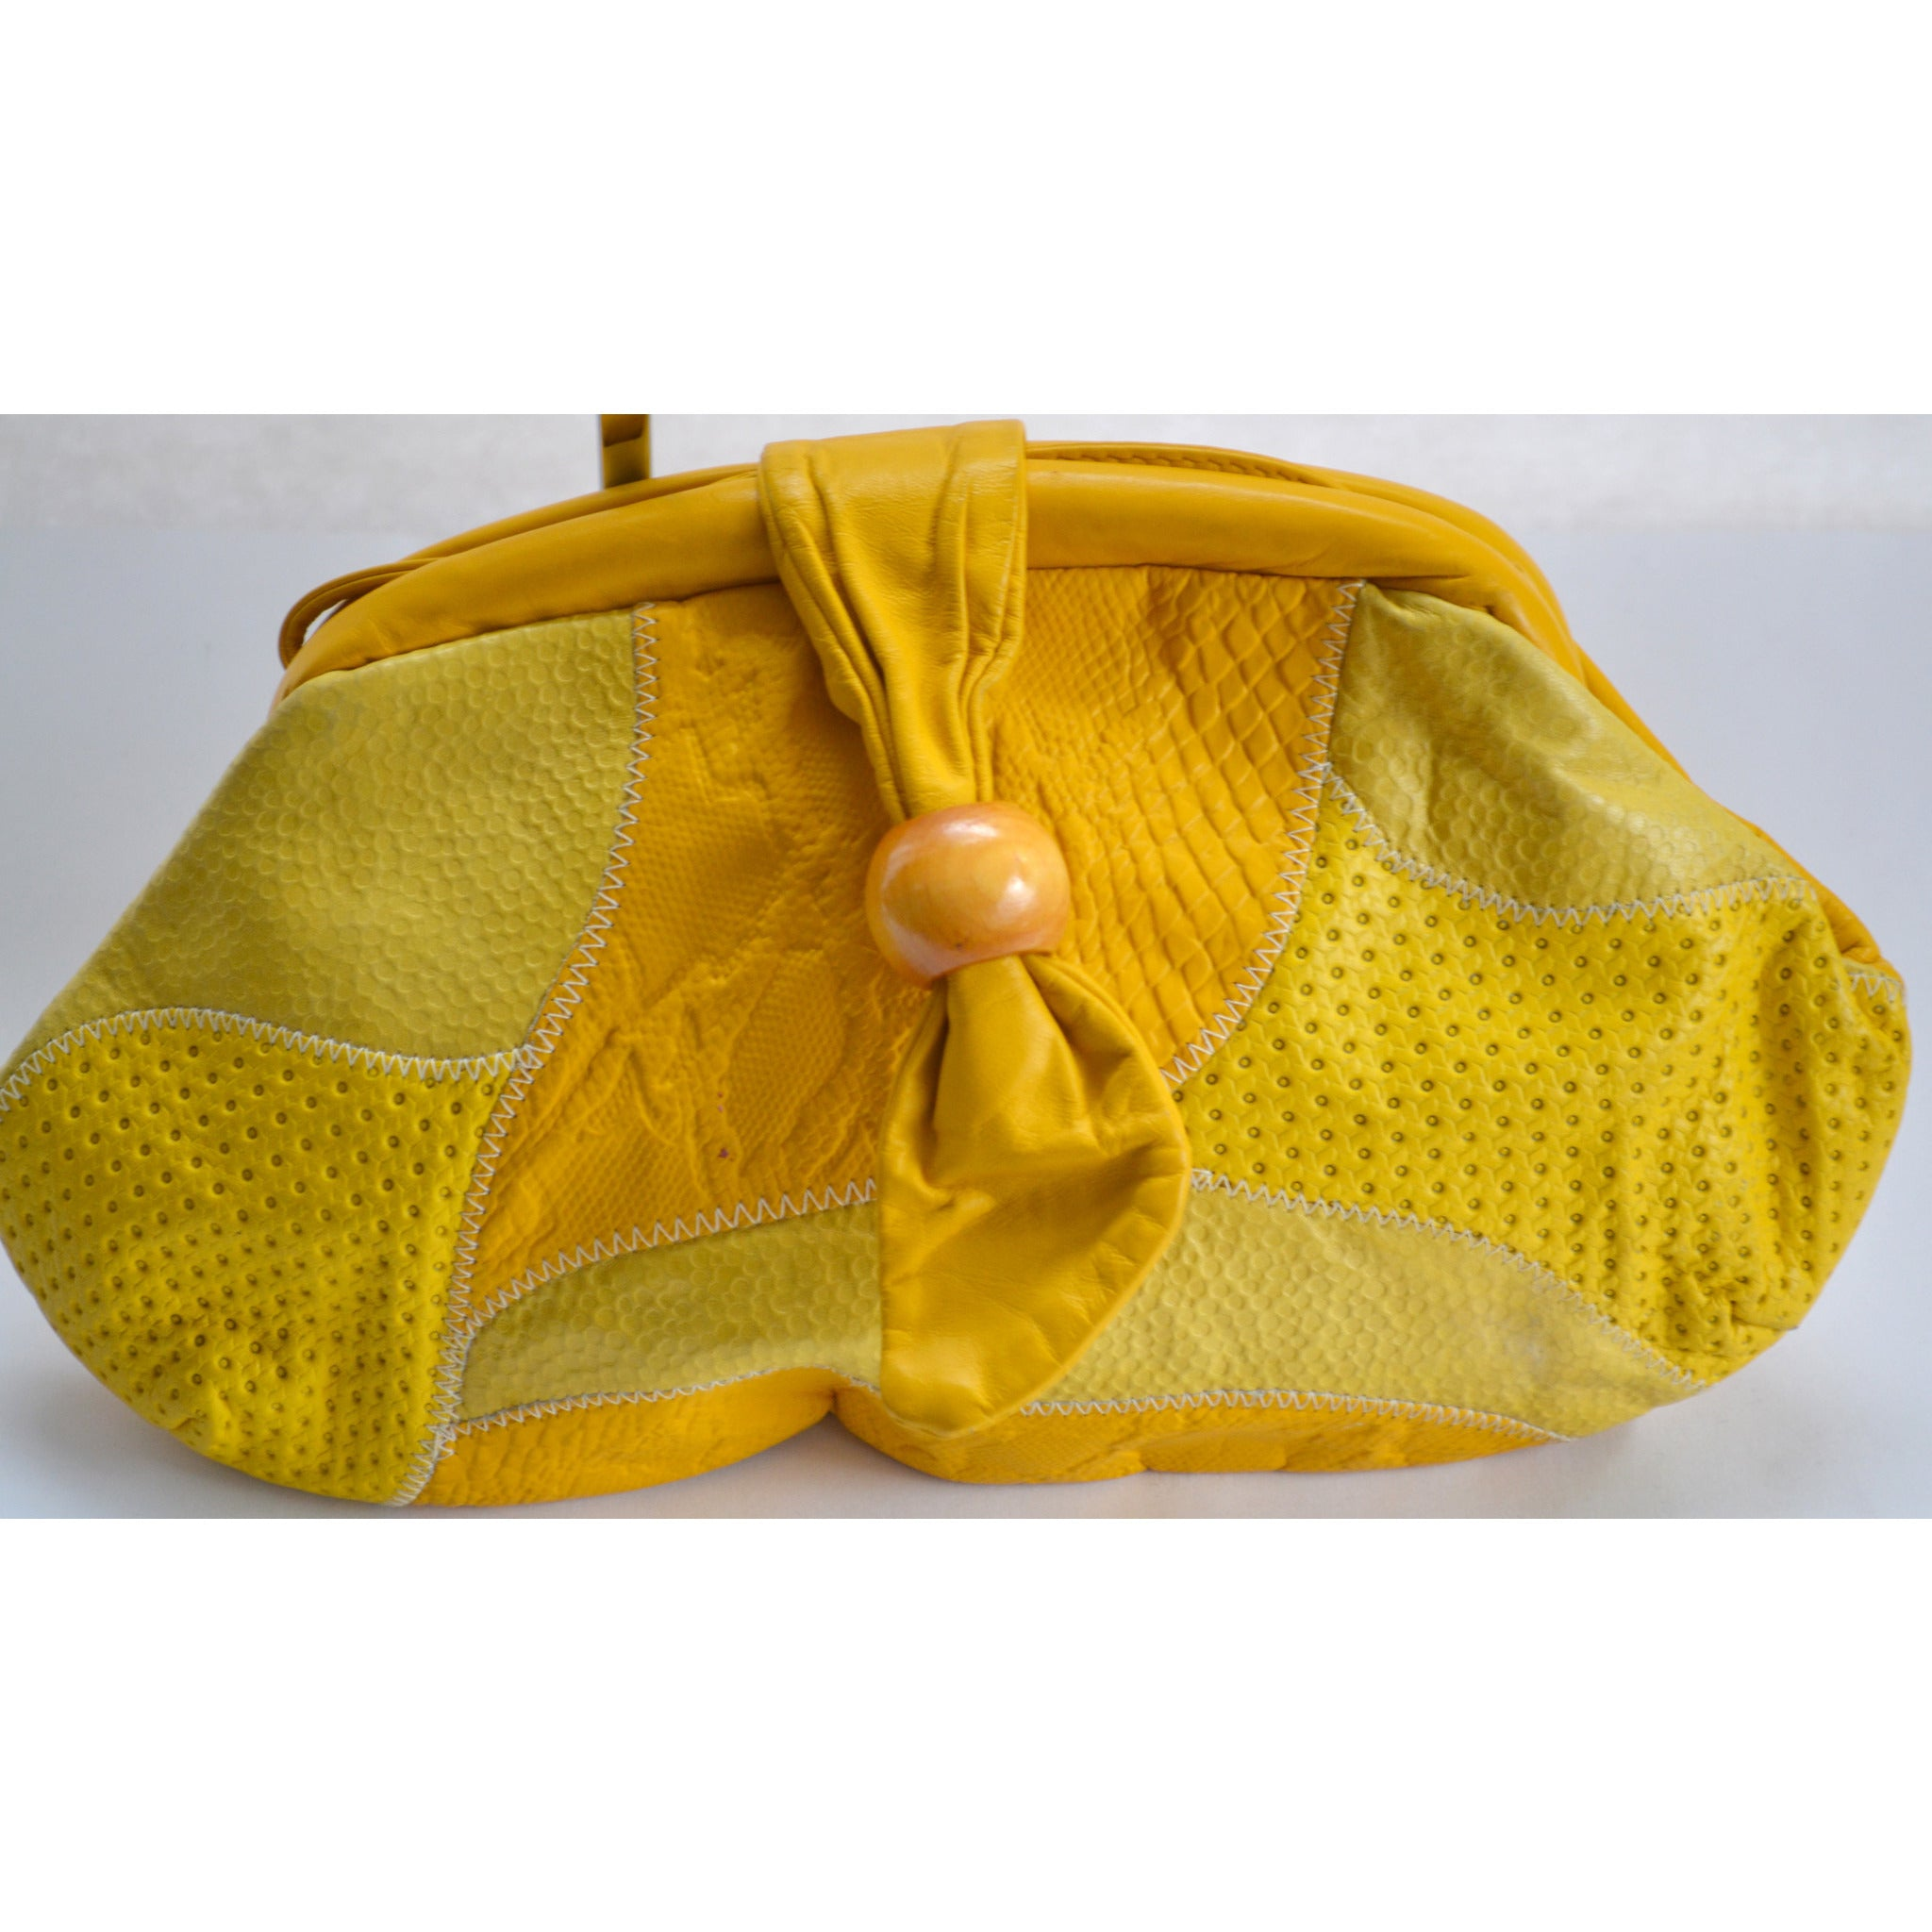 Vintage Yellow Leather Embossed Purse